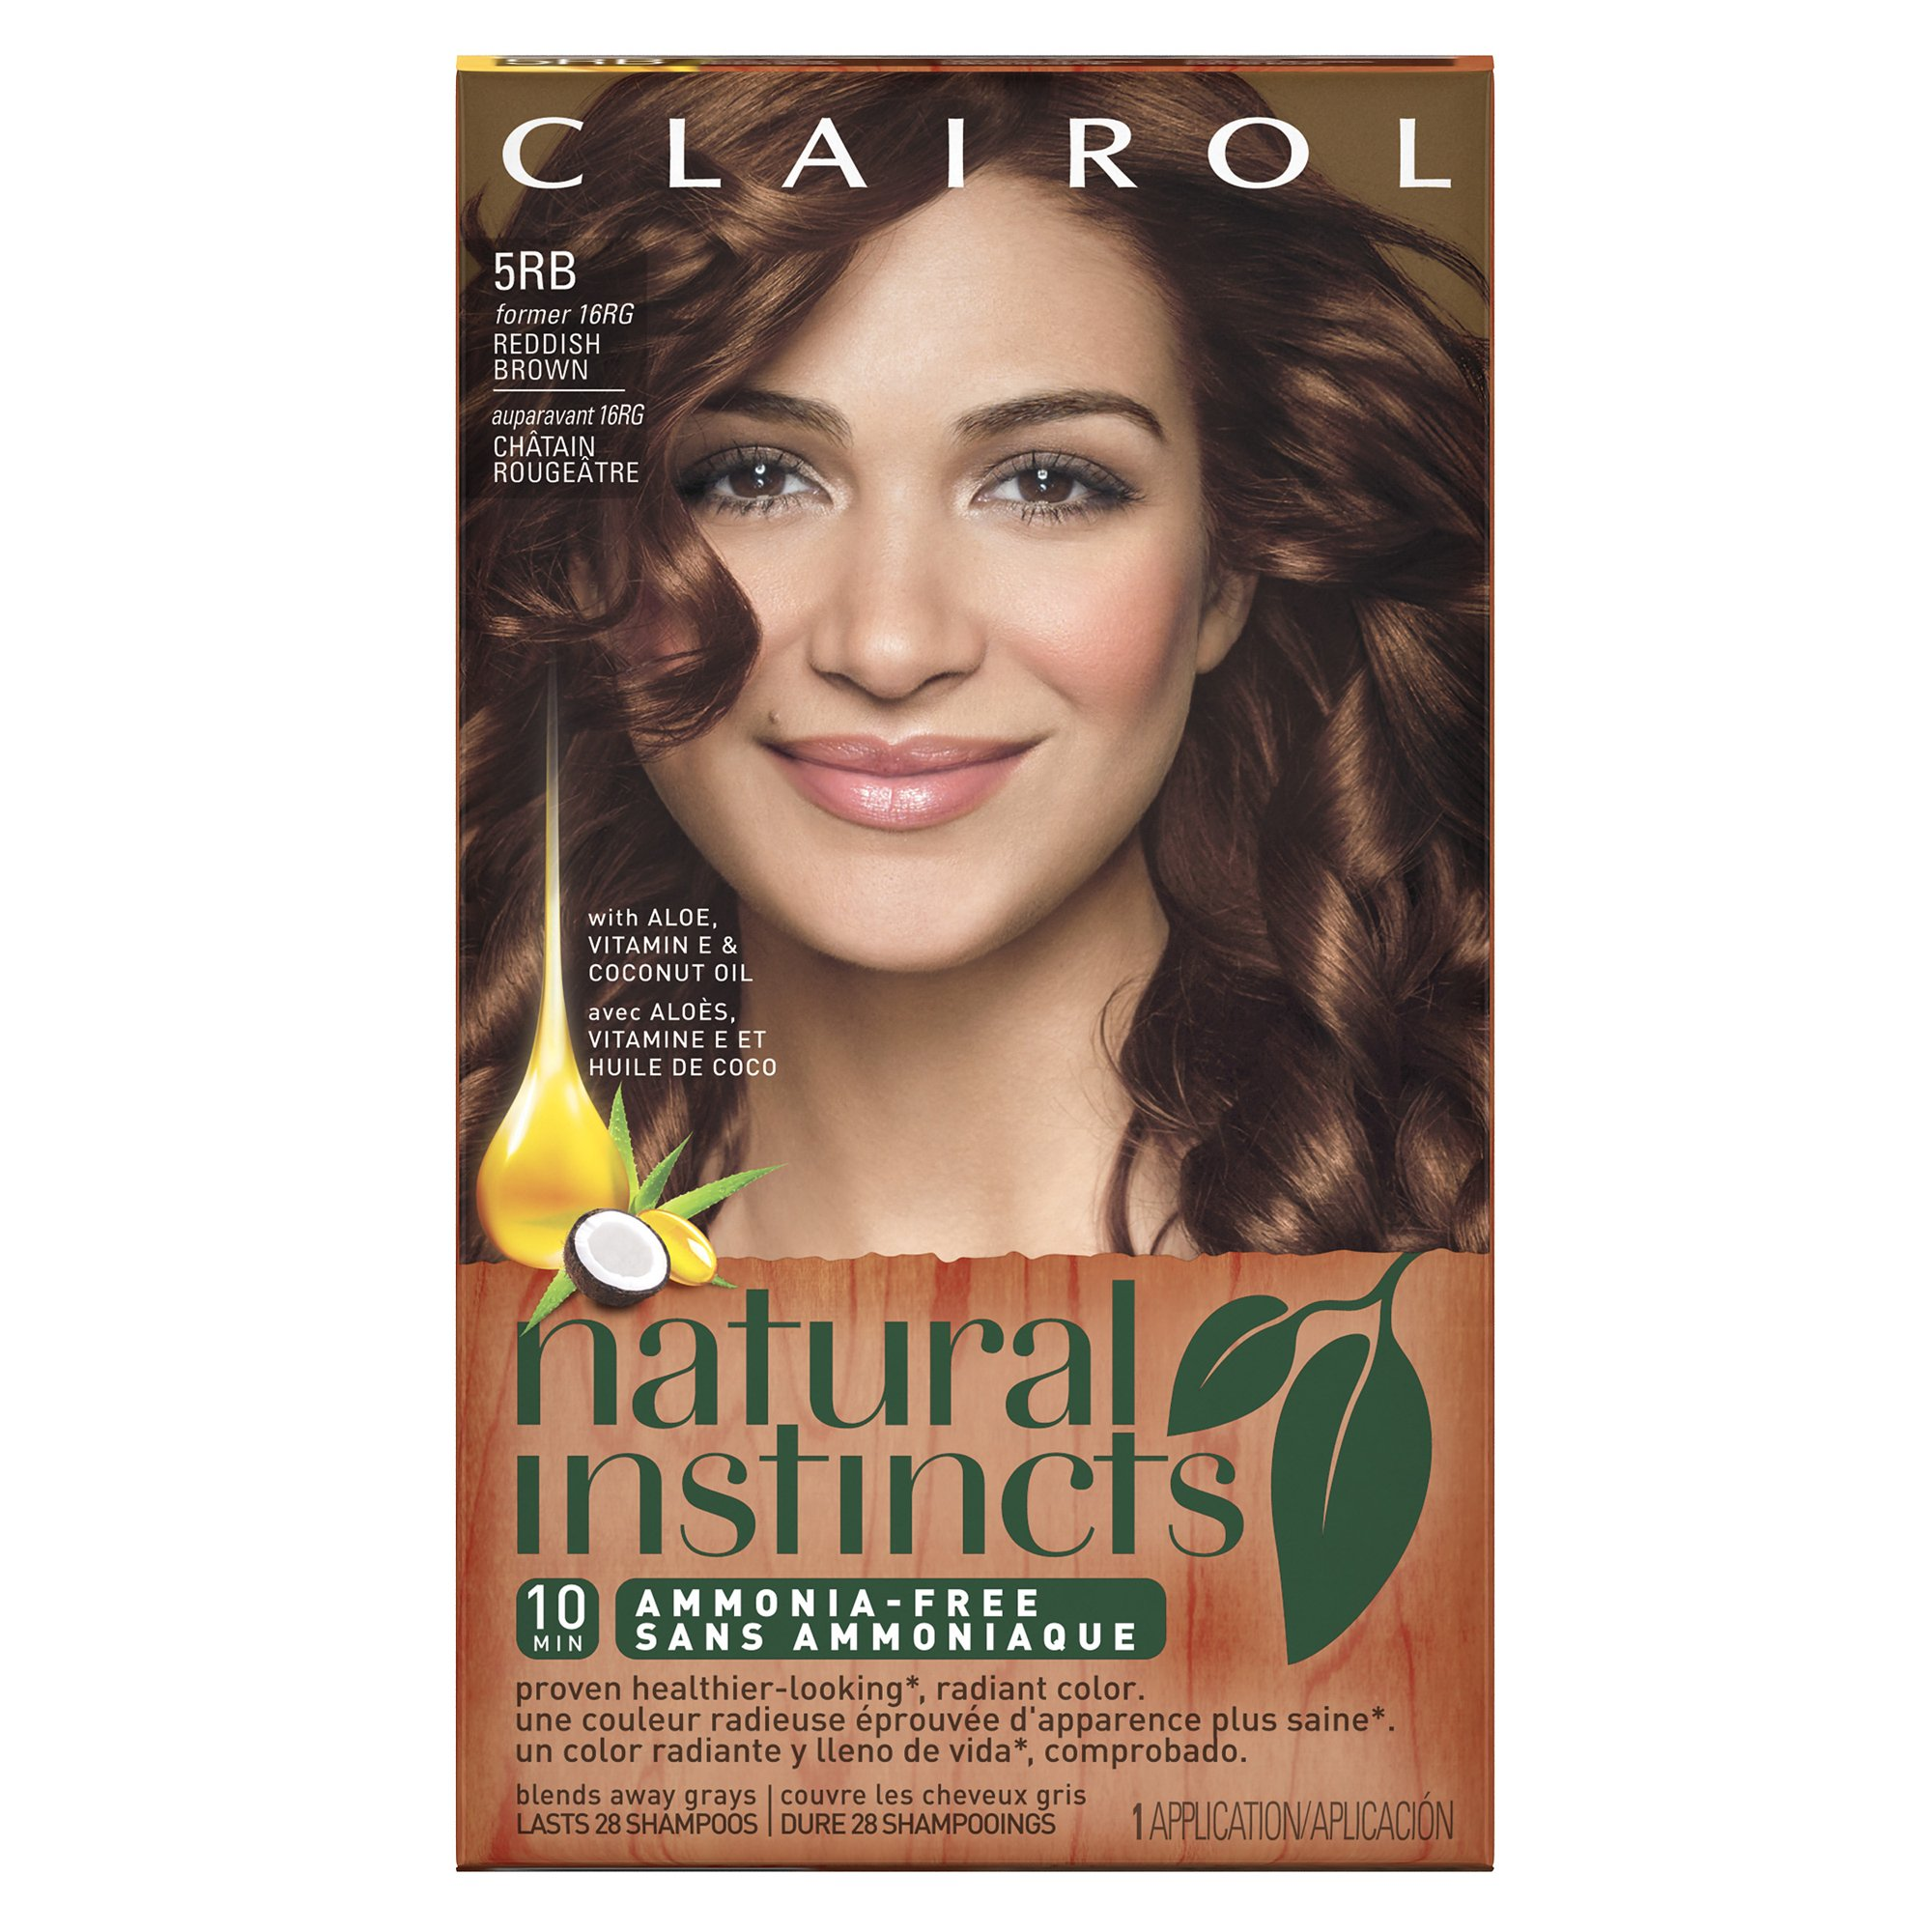 Amazon clairol natural instincts semi permanent hair color clairol natural instincts 5rb16rg sedona sunset reddish brown semi permanent hair solutioingenieria Choice Image